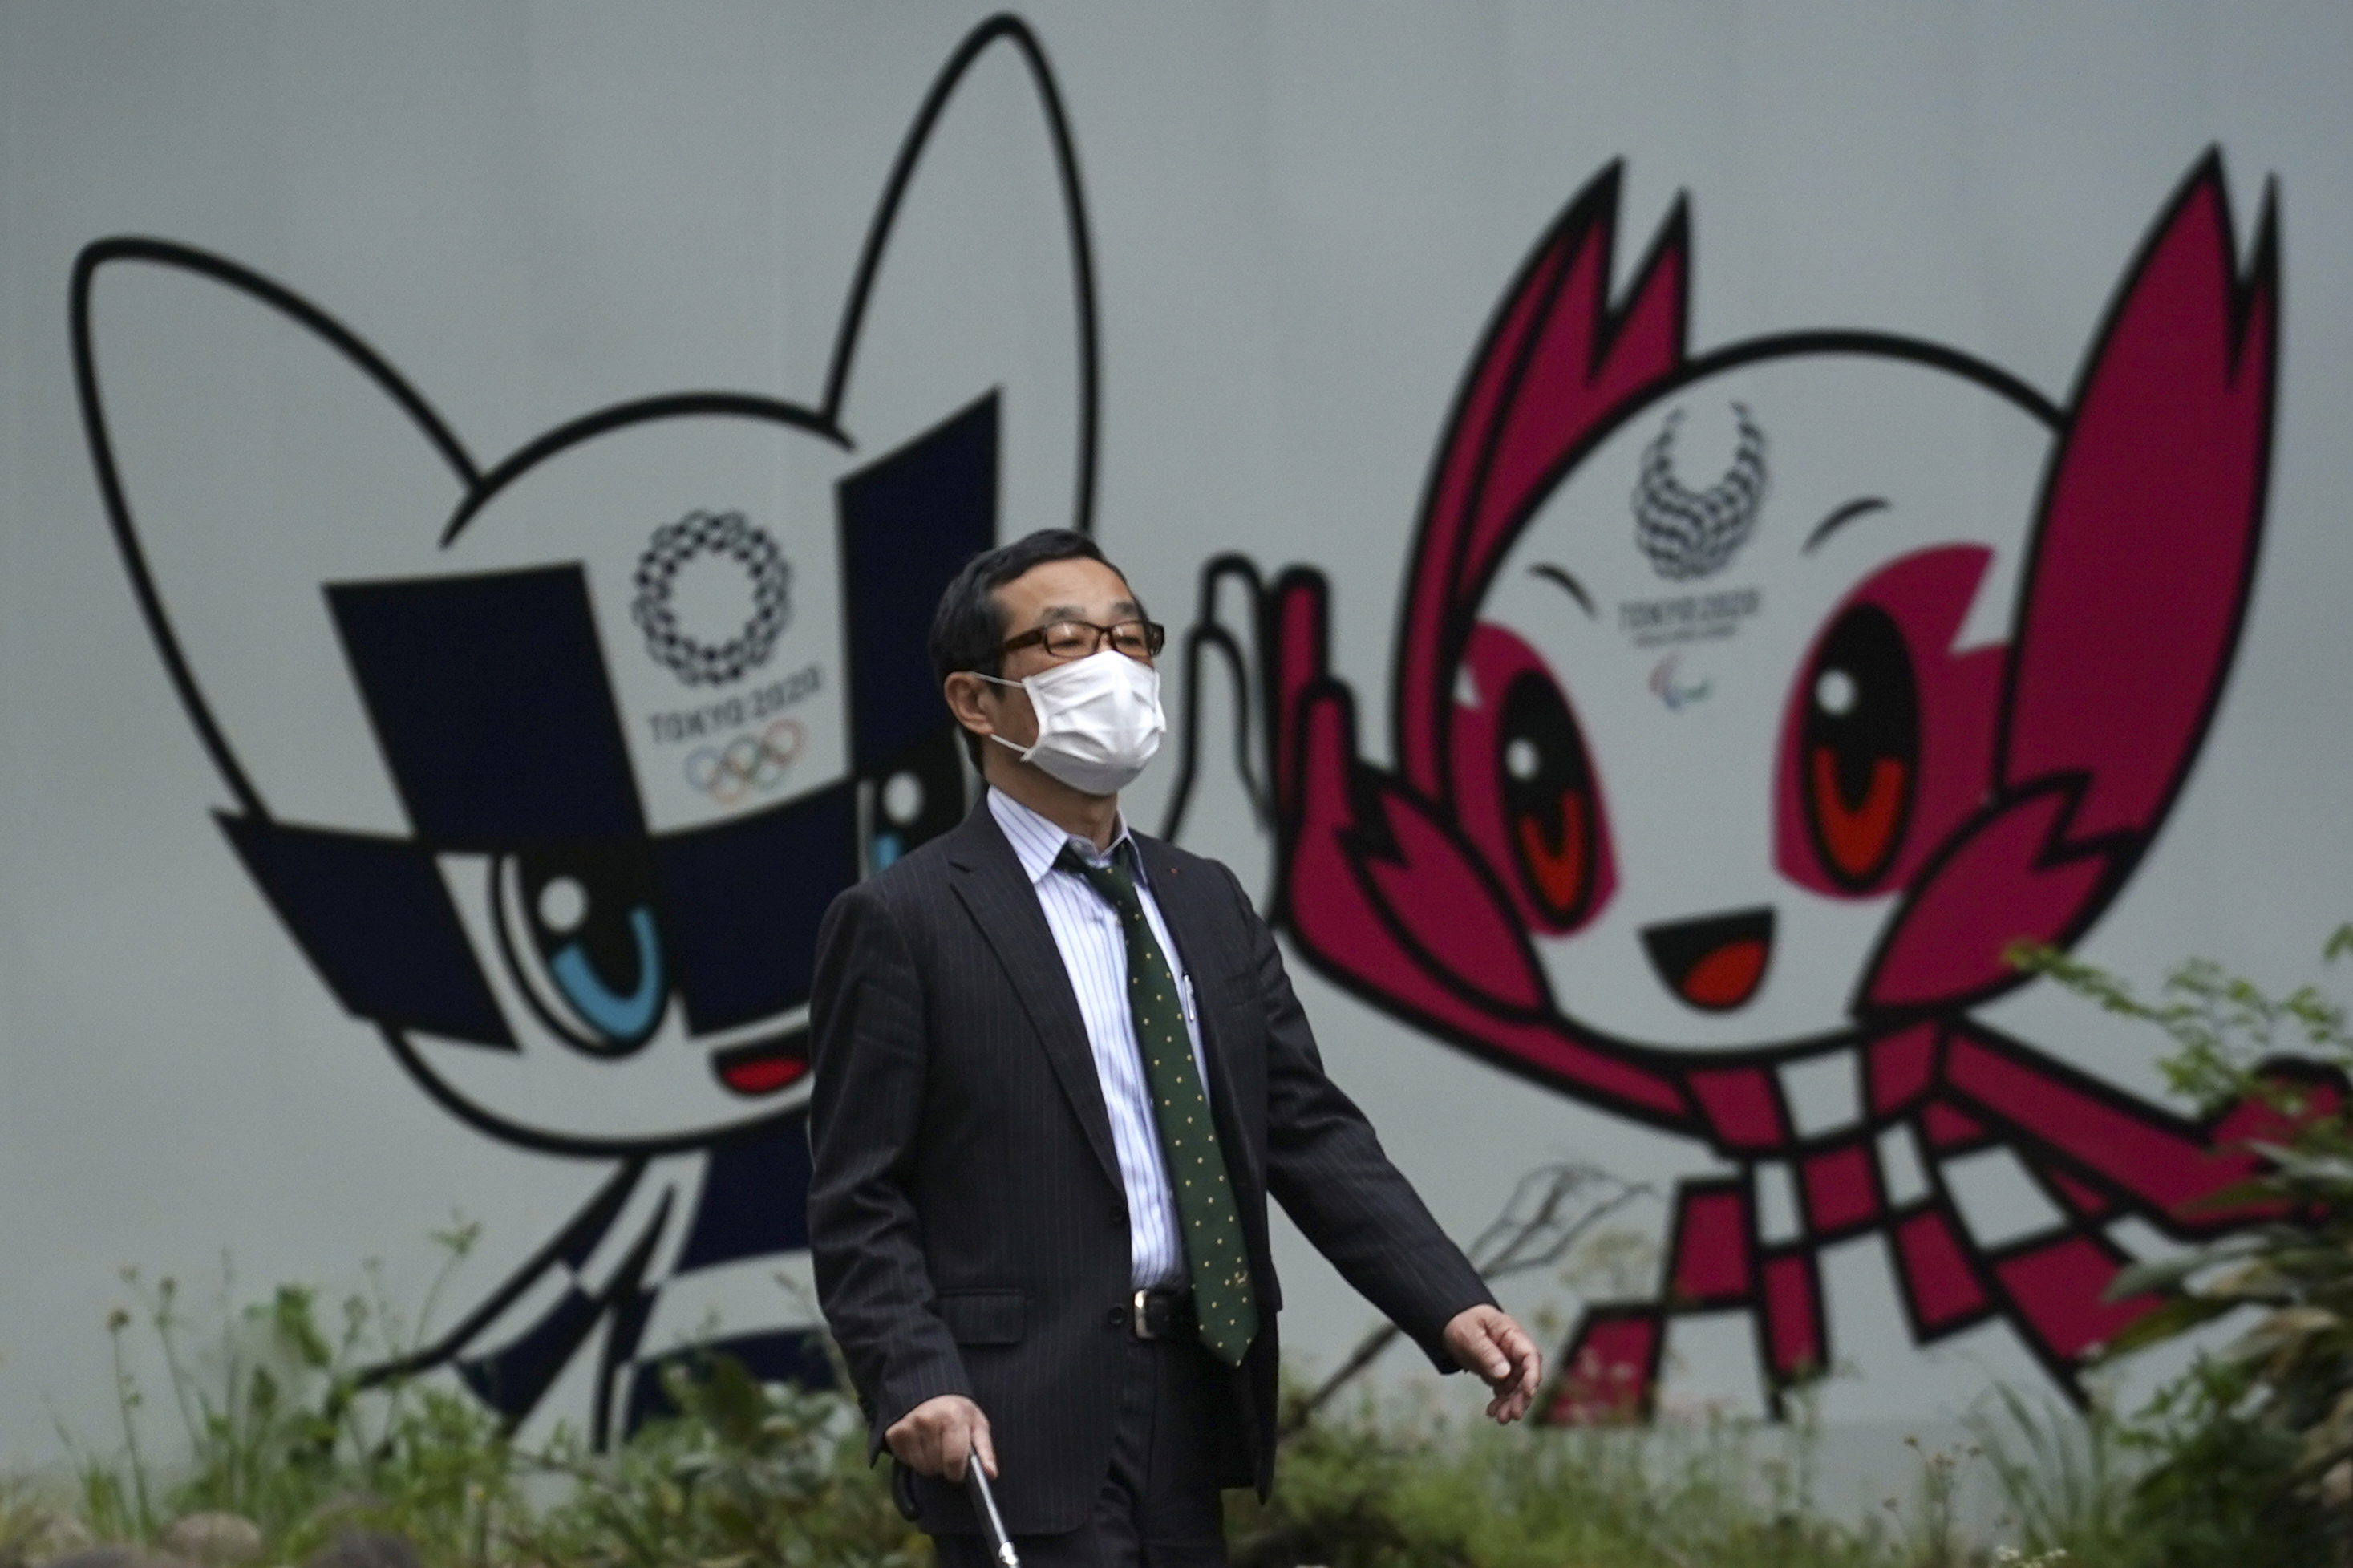 A man with a face mask against the spread of the new coronavirus walks in front of Miraitowa and Someity, mascots for the Tokyo 2020 Olympics and Paralympics at a park in Tokyo Tuesday, April 28, 2020. Japan's Prime Minister Shinzo Abe expanded a state of emergency to all of Japan from just Tokyo and other urban areas as the virus continues to spread.